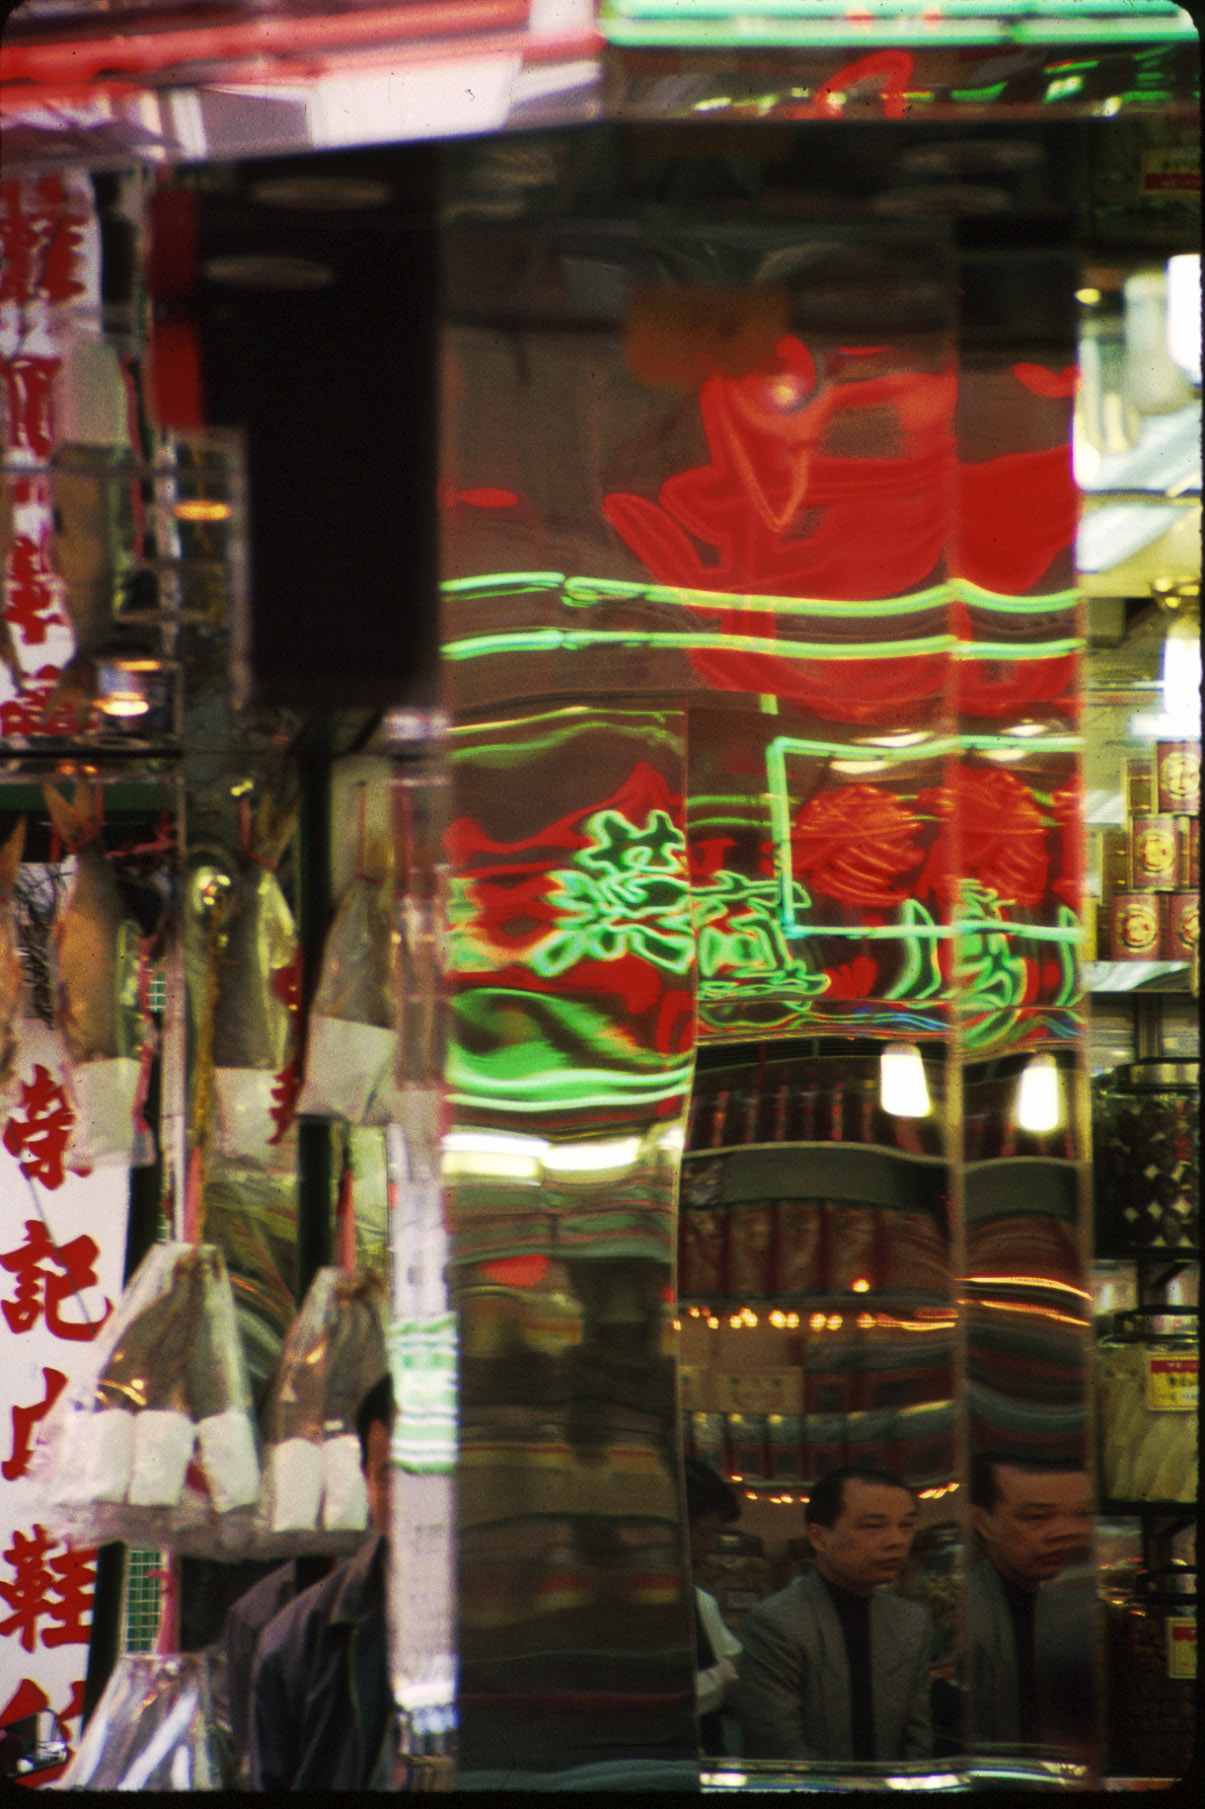 Macao 1997, by Richter